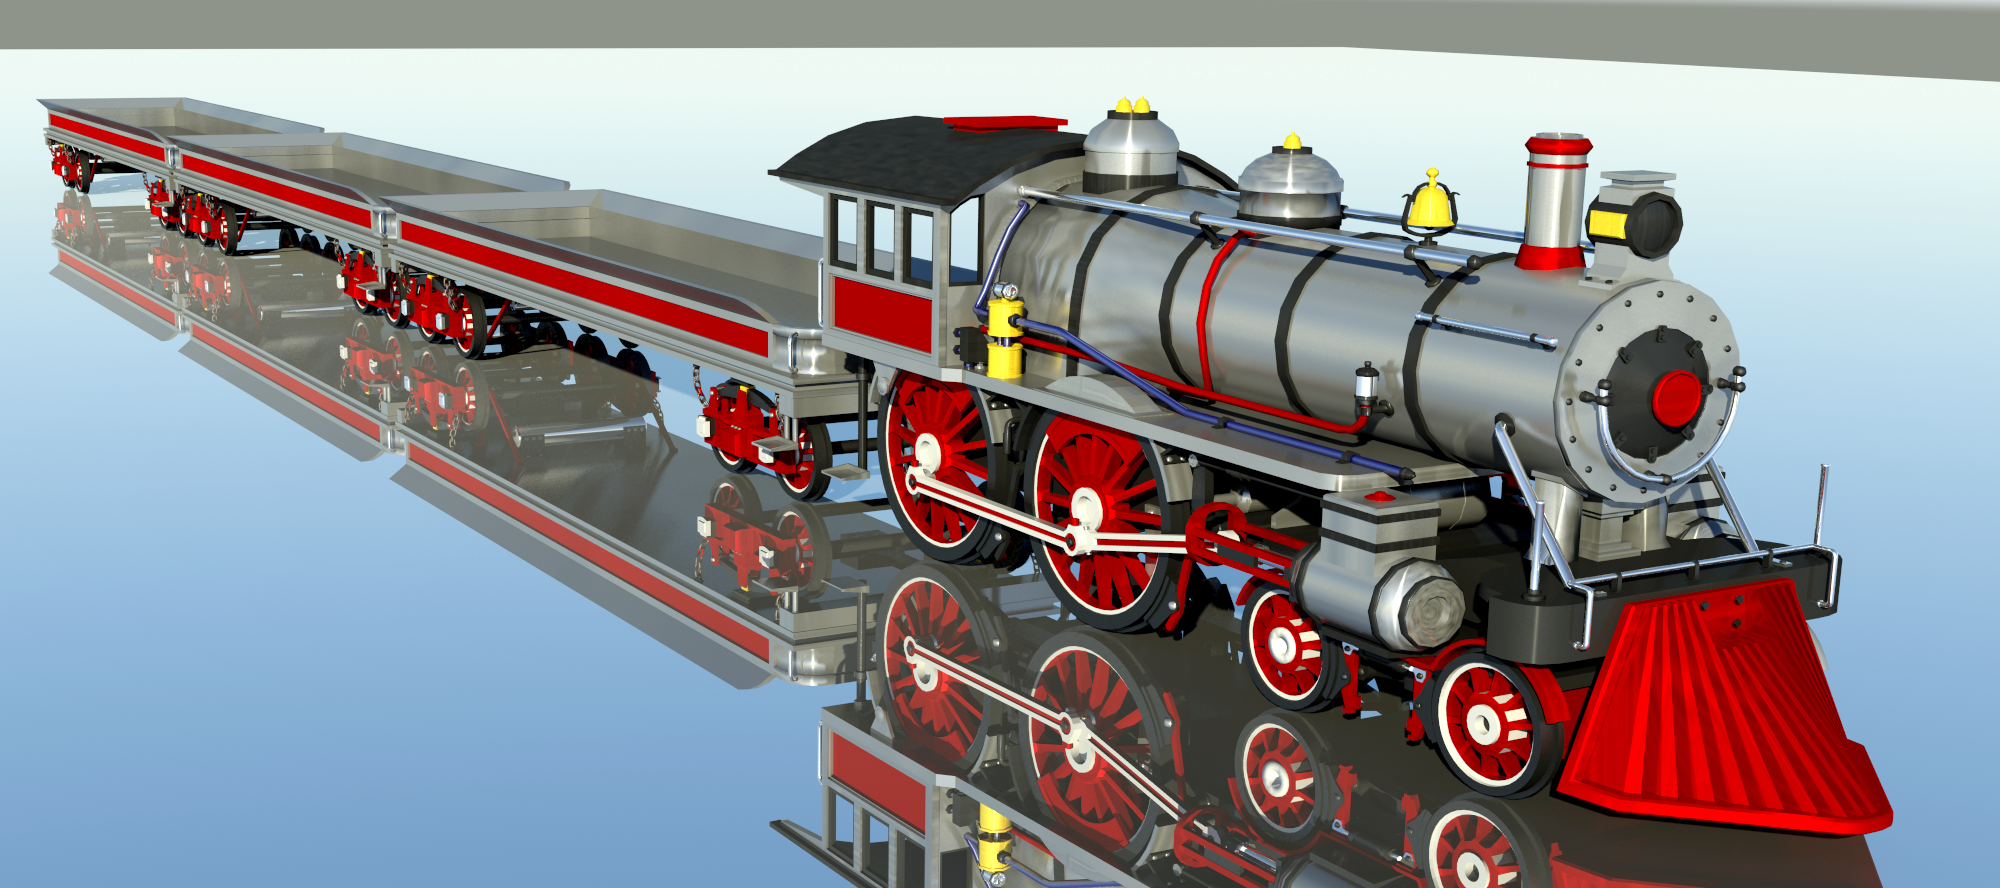 TrainEngine_Final2.png